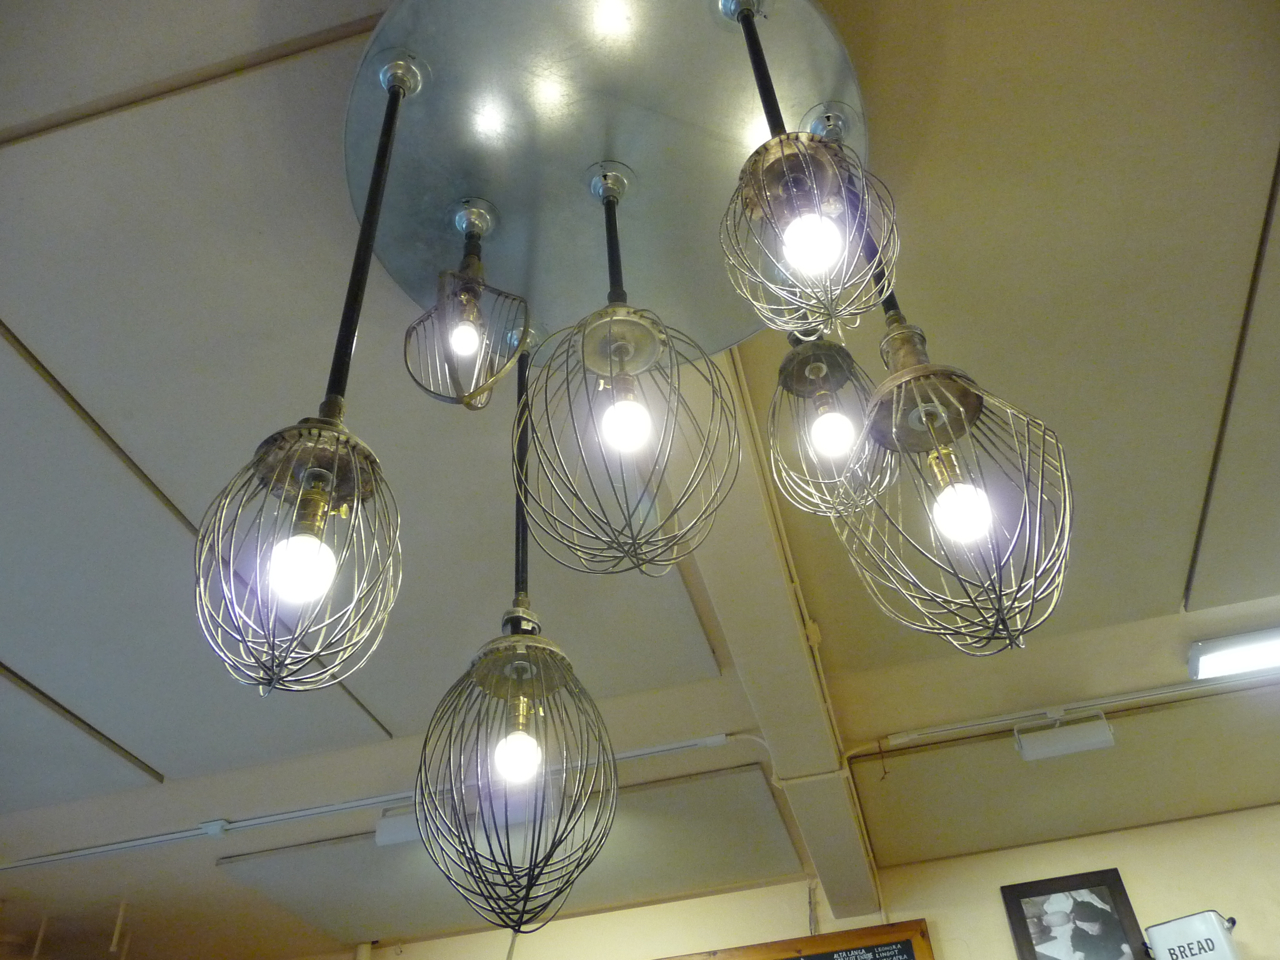 The Occasionist Every Day Delights Inventive Light Fixtures